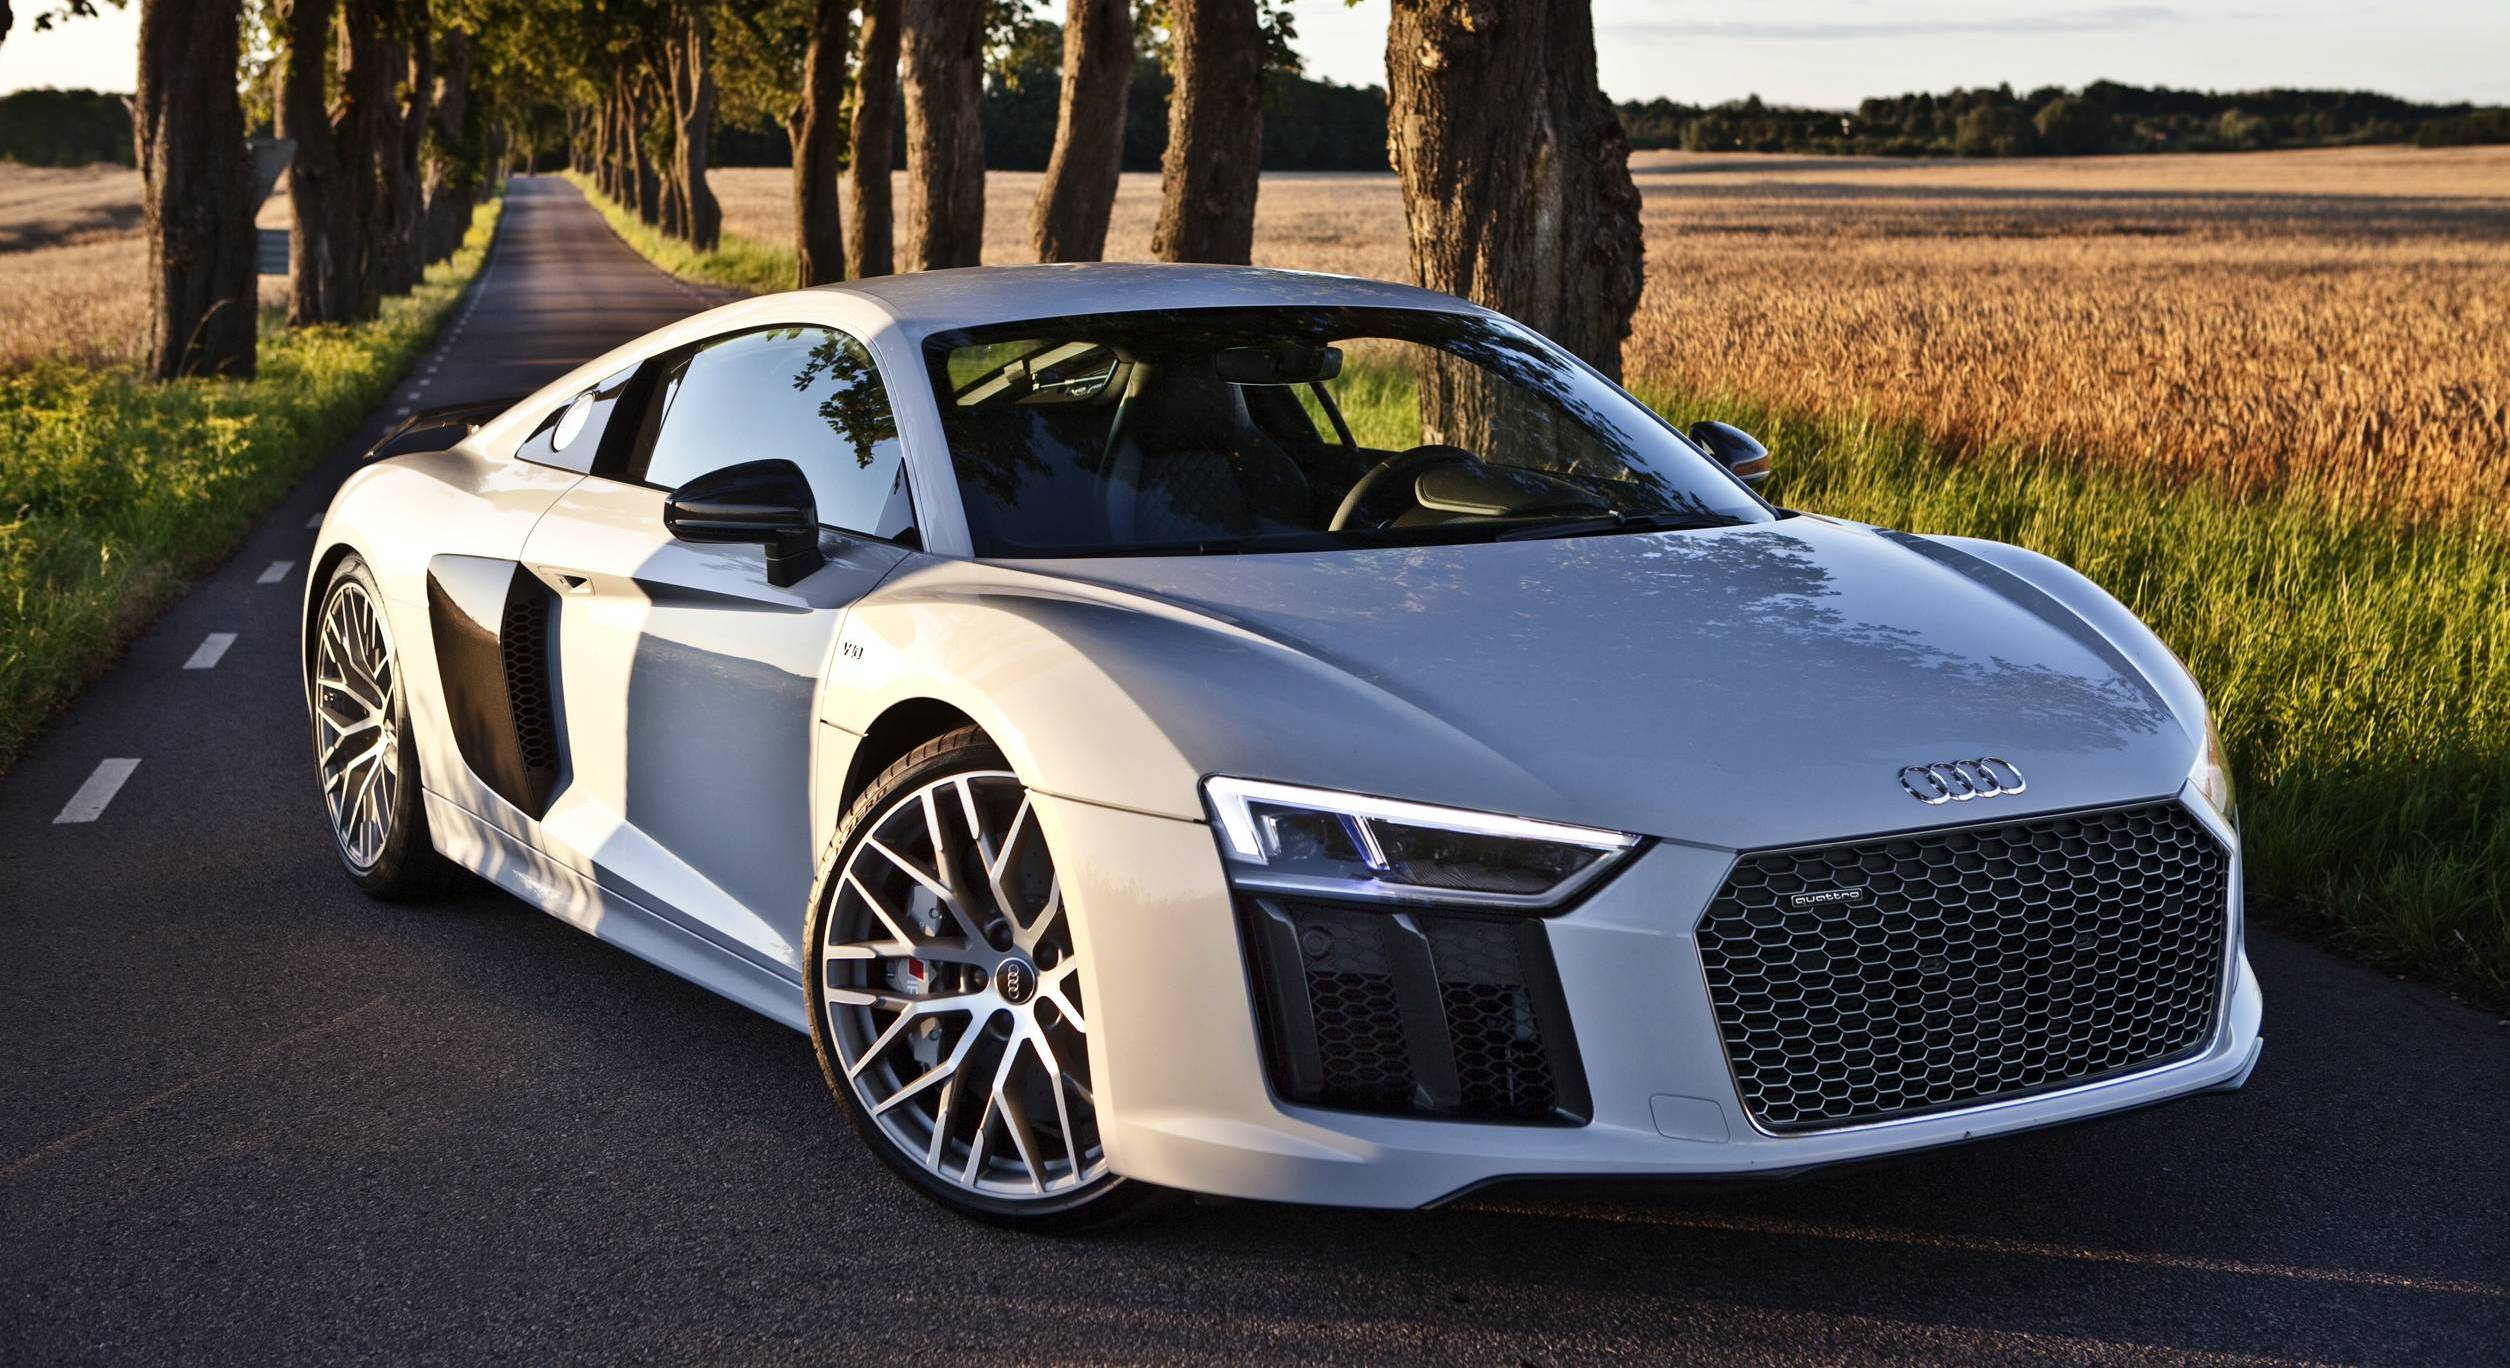 2017 audi r8 v10 plus in suzuka grey. Black Bedroom Furniture Sets. Home Design Ideas